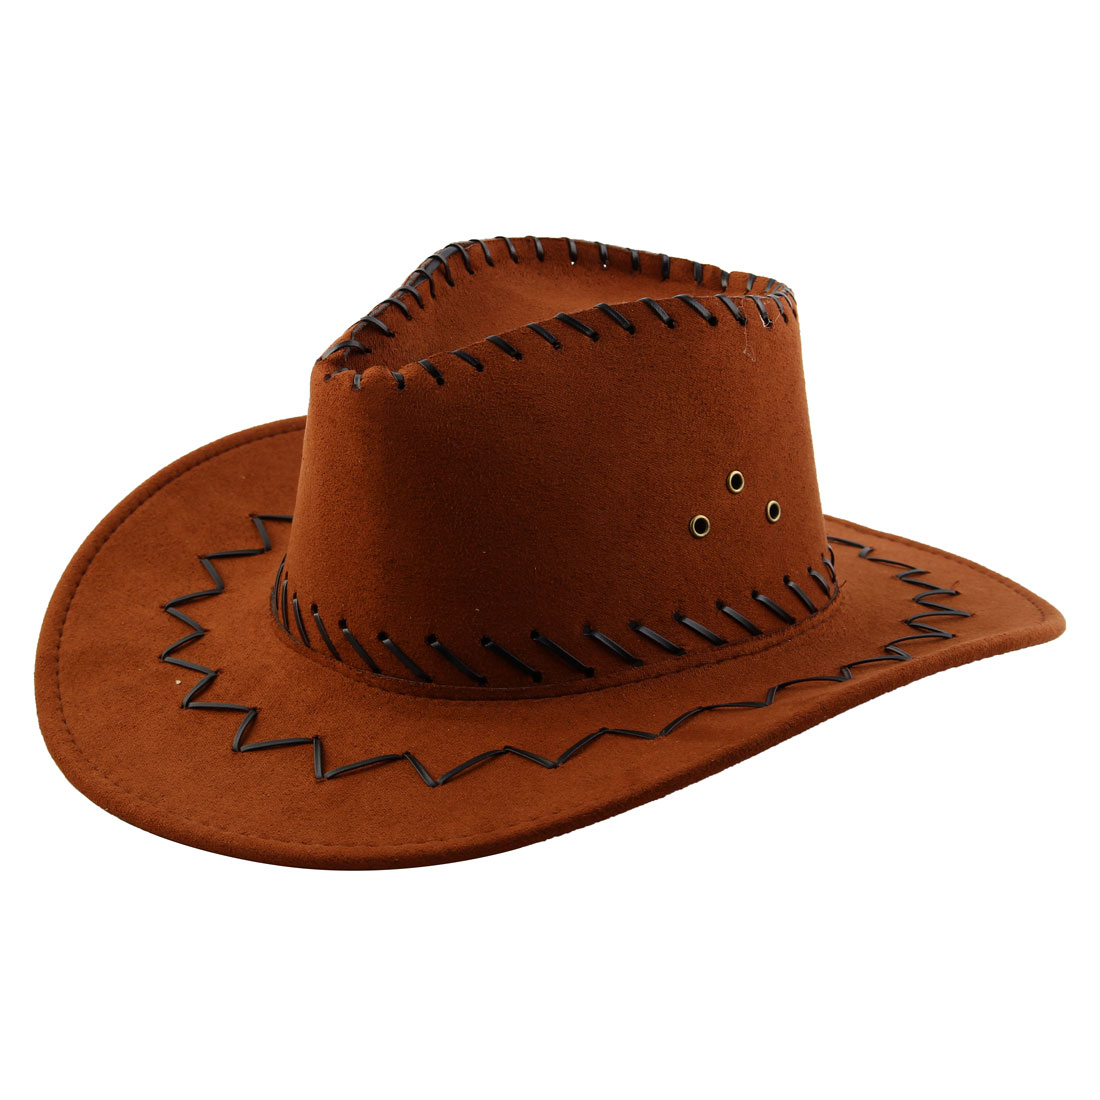 1e175416bc7 Adult Adjustable Neck Strap Wide Brim Western Style Sunhat Cowboy Hat Brown